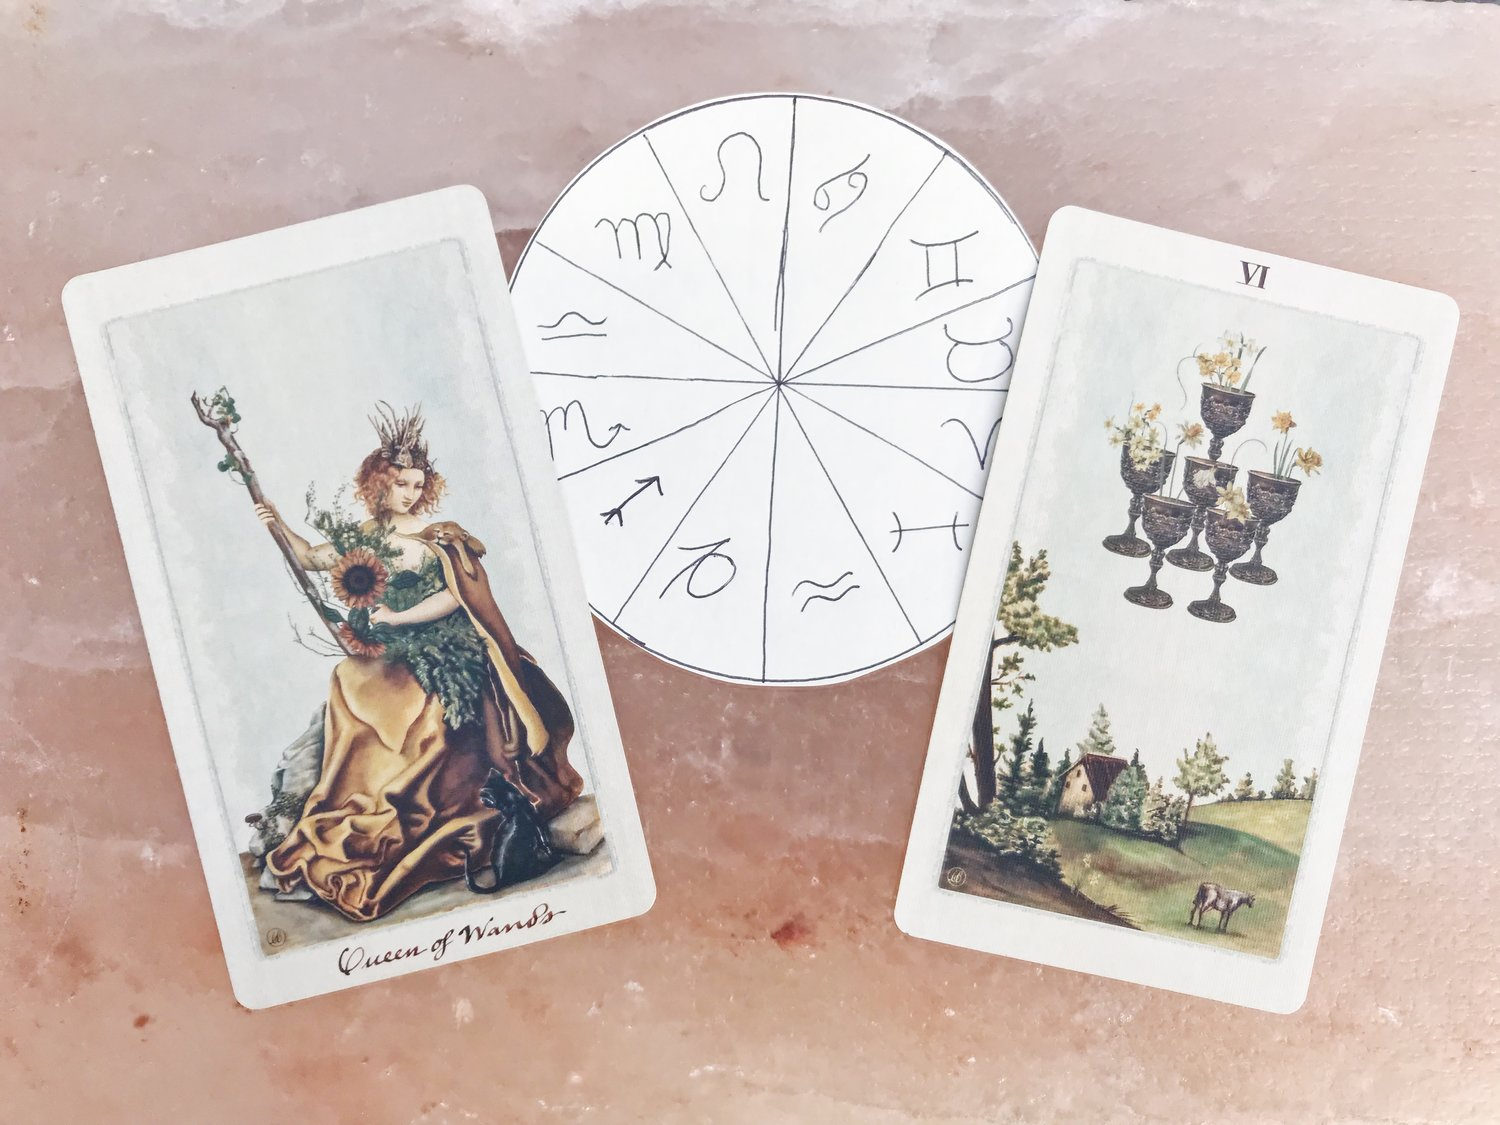 PHILOSOPHY - Creative Cusp readings empower you to know yourself more deeply and take action that is aligned with your unique core Truth.